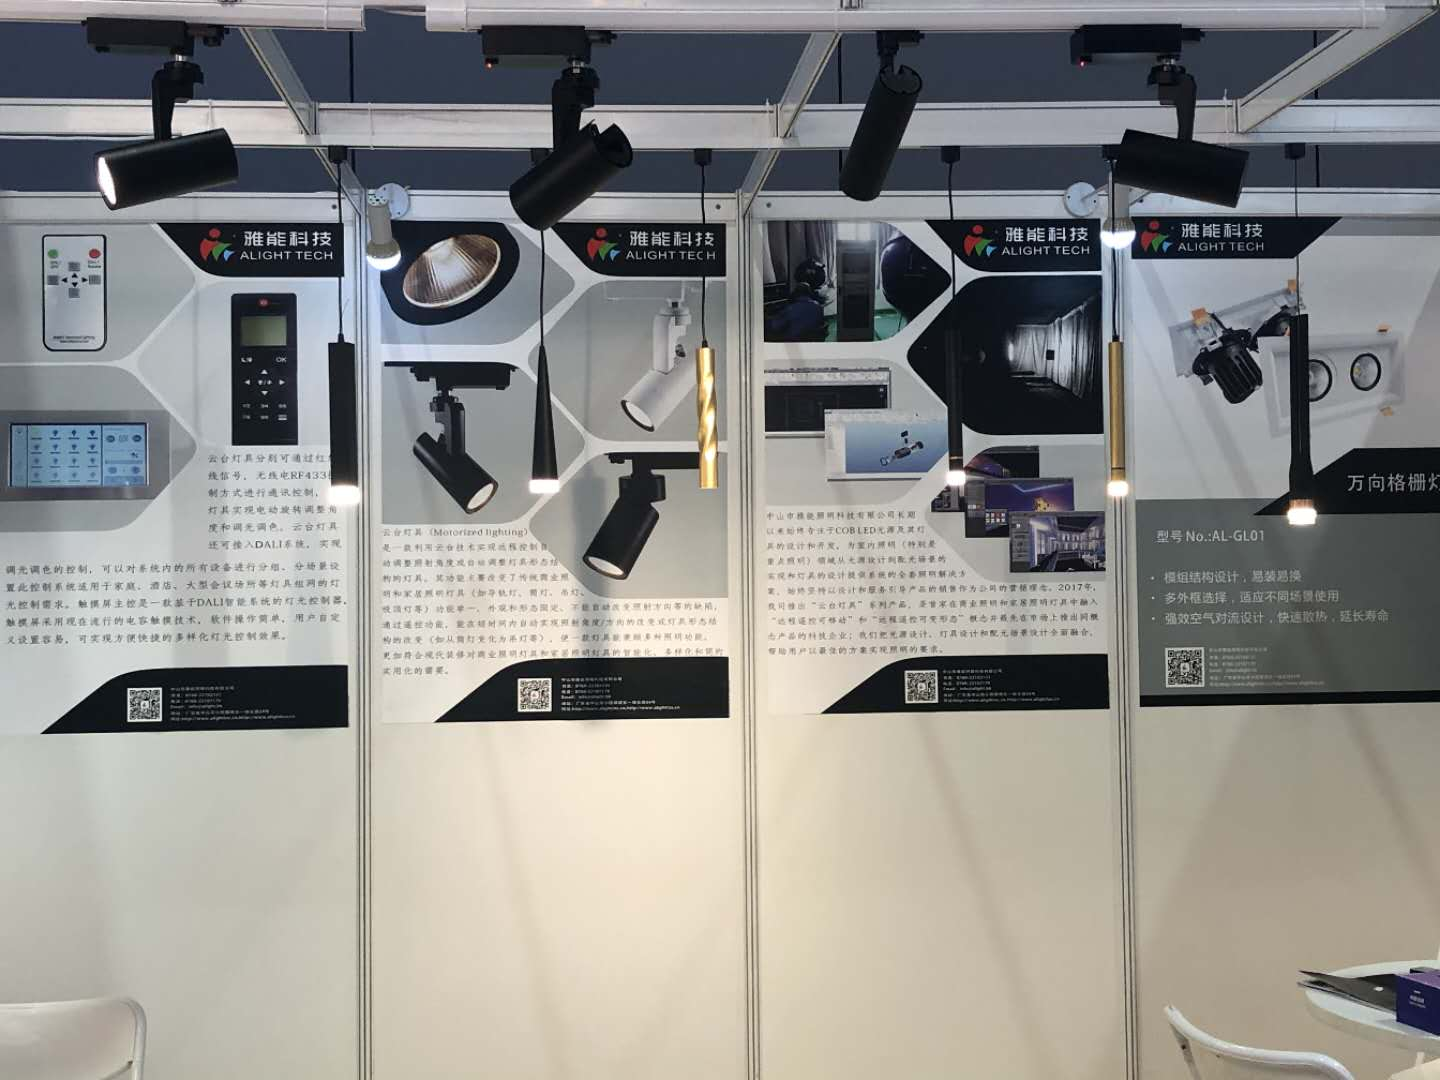 Alight @ Expo Lighting Shanghai Concluded Successfully